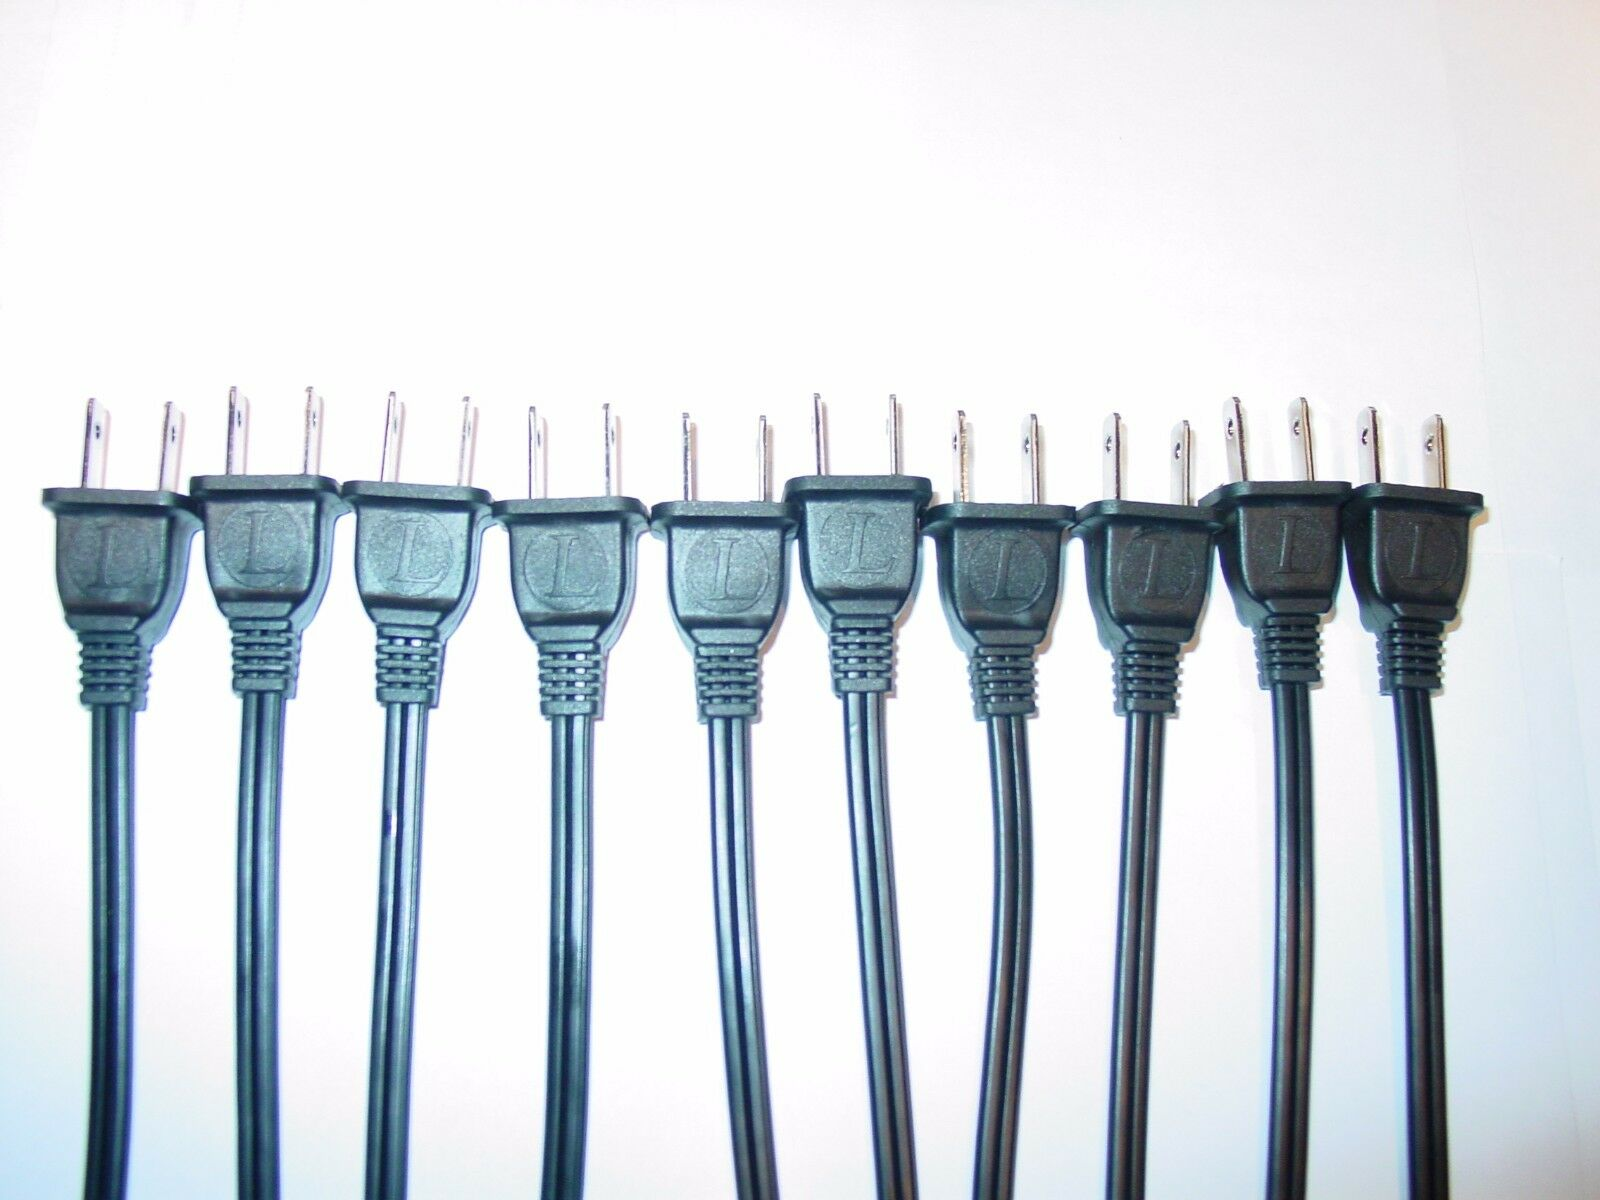 27 Lionel L Power Cord's (B-292) for Lionel transformers 27 Total Free Shipping